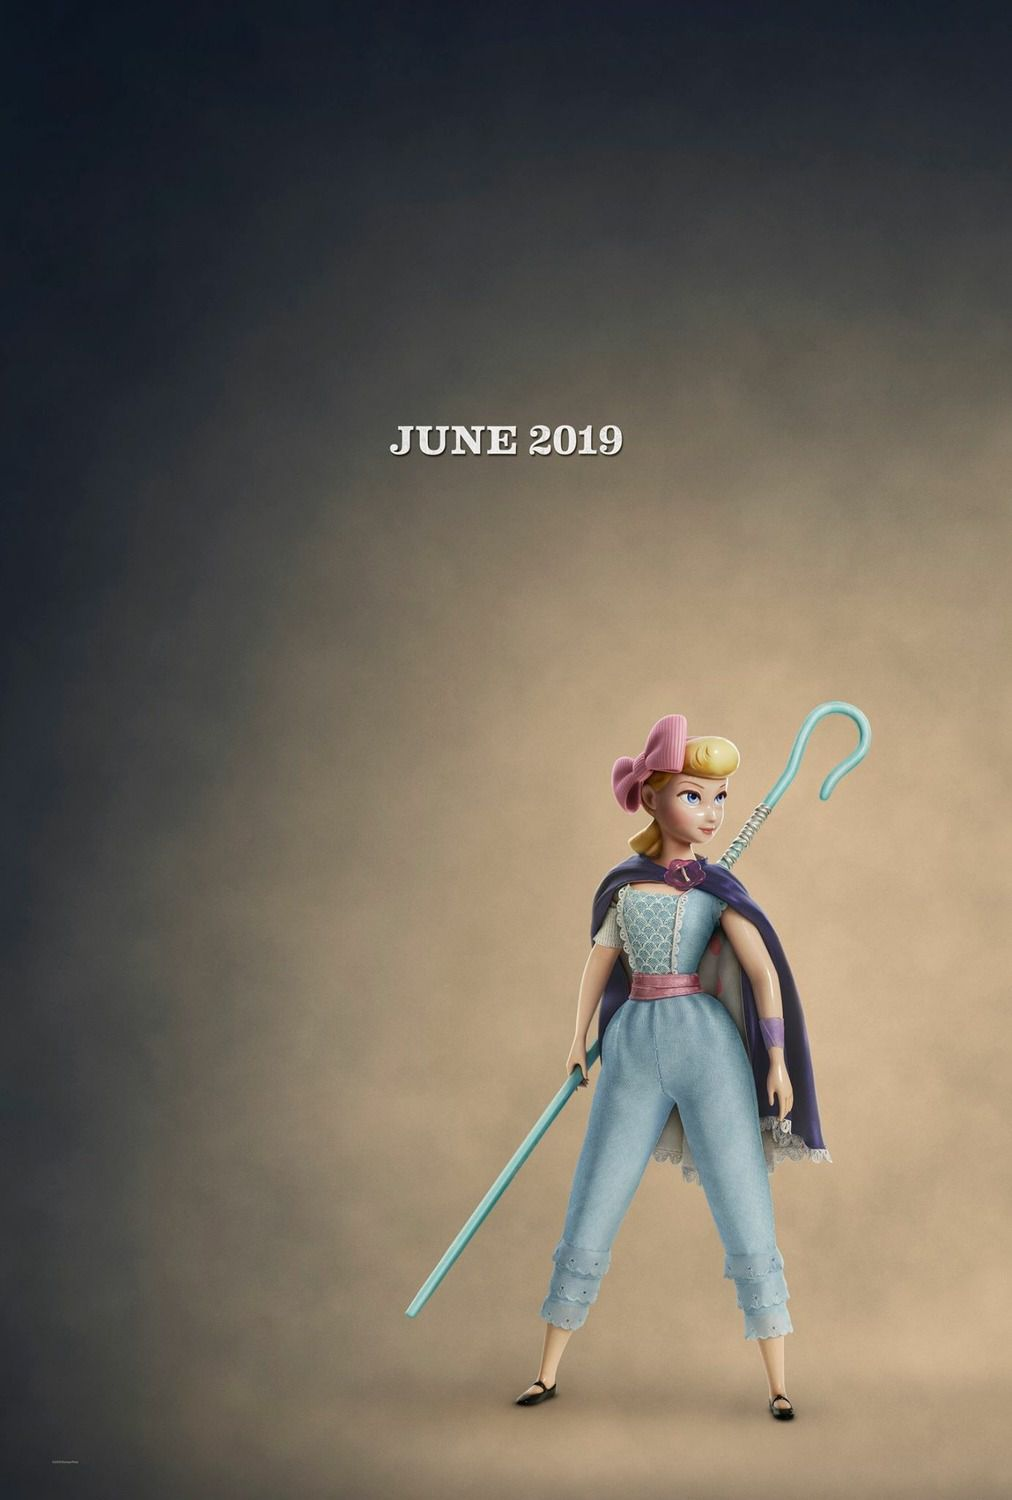 Toy Story 4 - Pastorella - Shepherdess